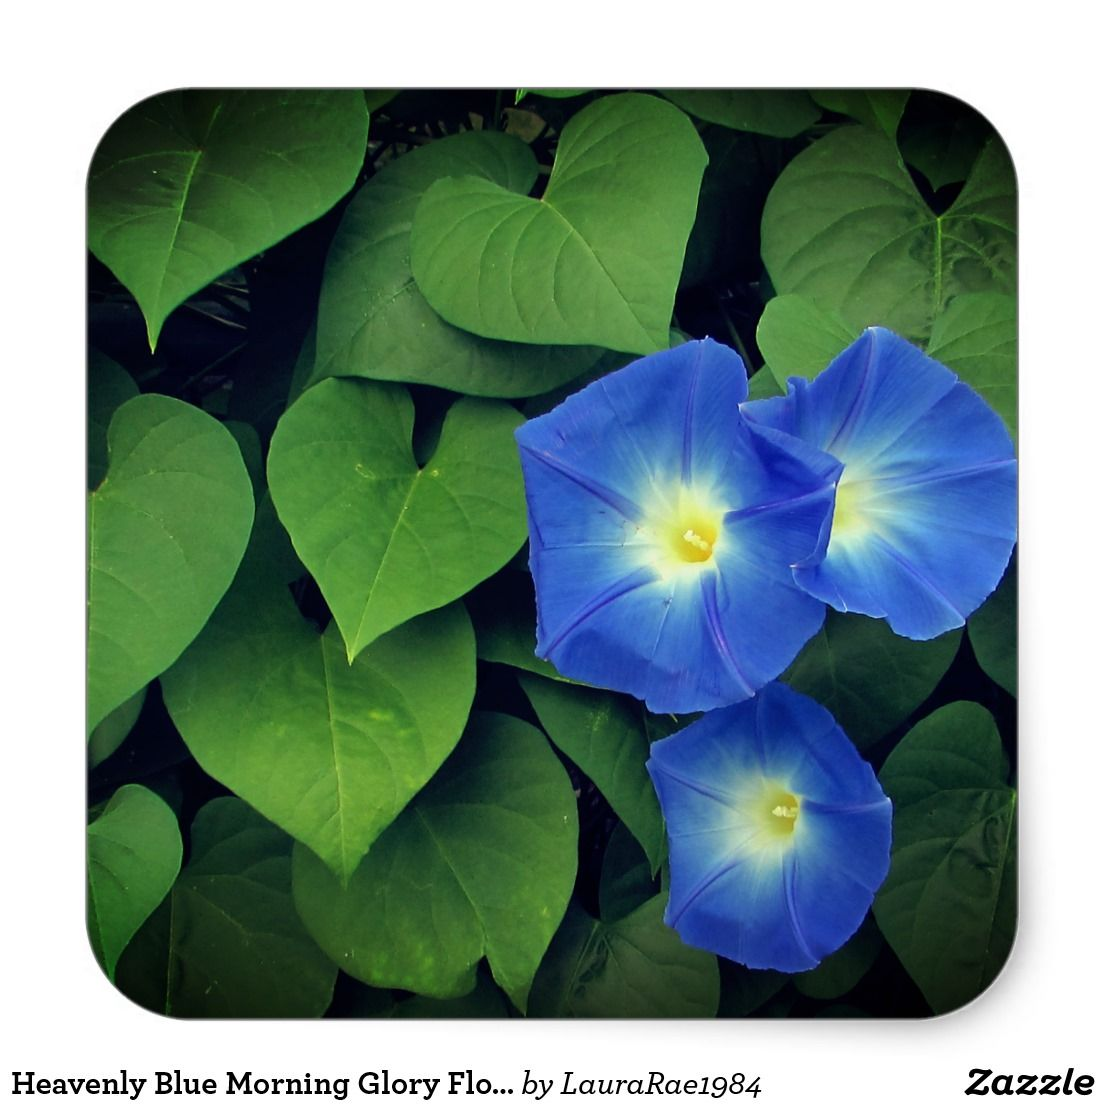 Heavenly Blue Morning Glory Flowers Square Sticker Zazzle Com In 2020 Morning Glory Flowers Blue Morning Glory Morning Glory Plant